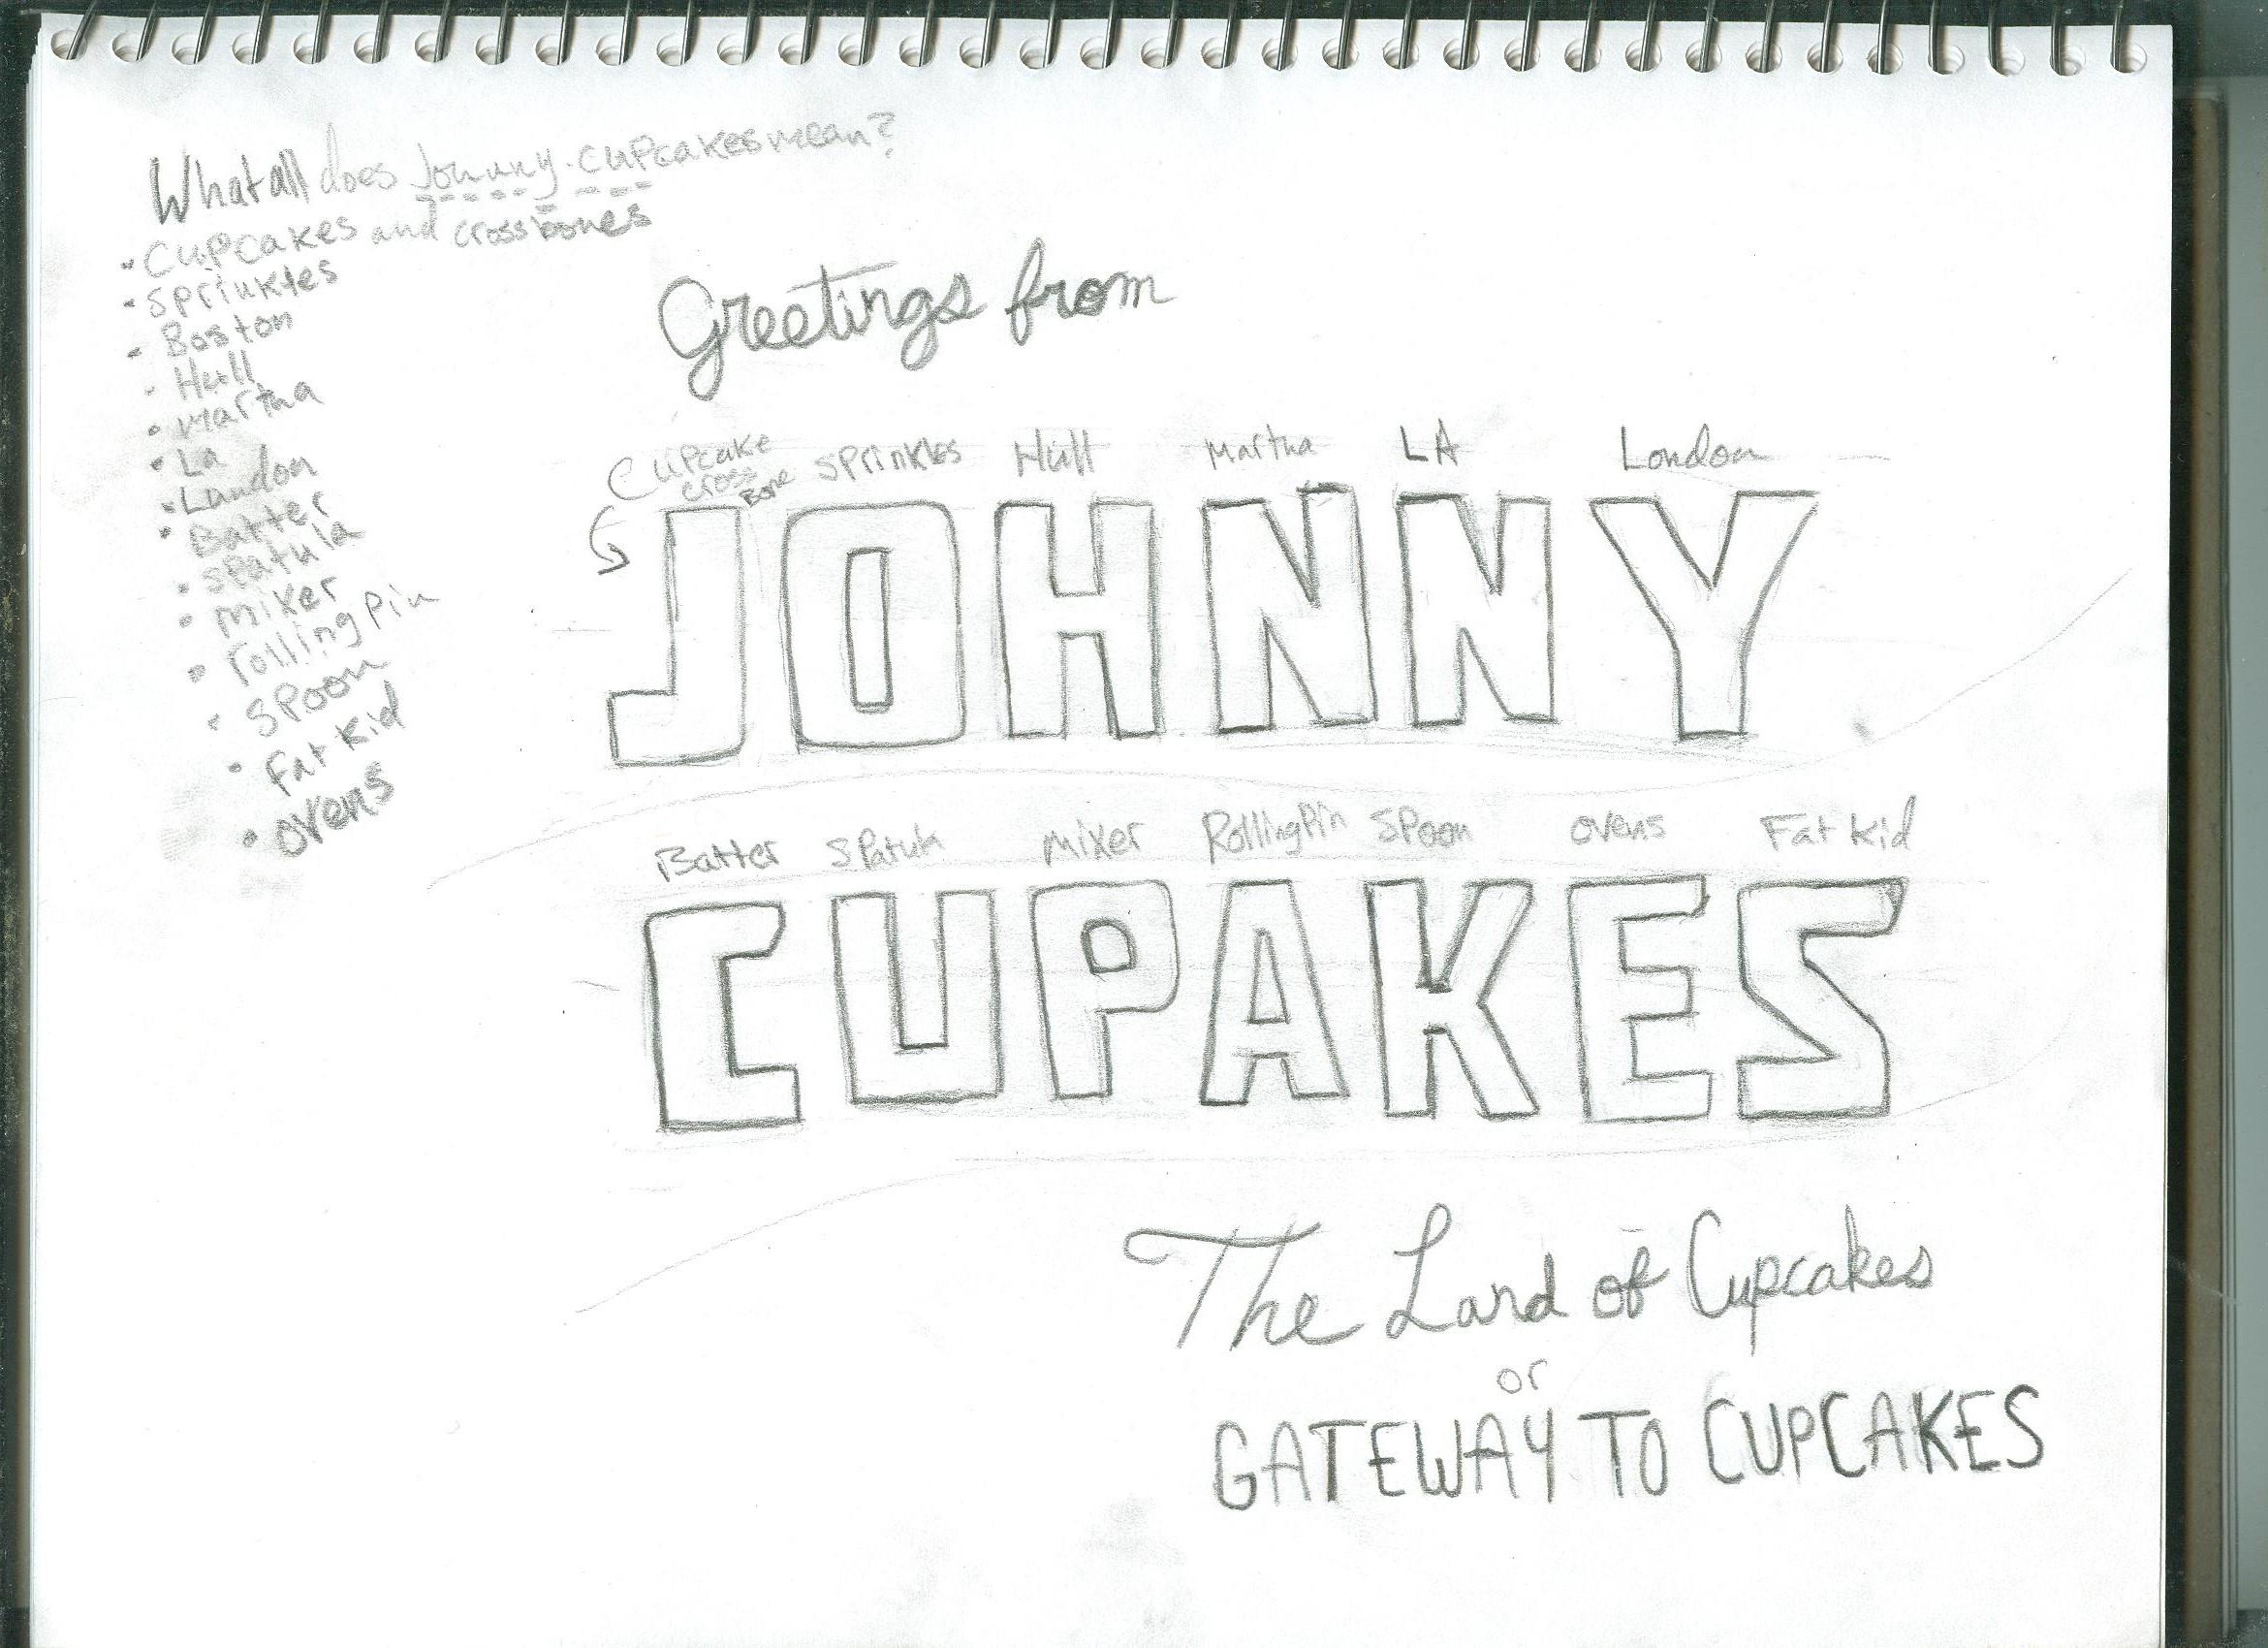 Justin McLaughlin's take on Johnny Cupcakes. - image 4 - student project